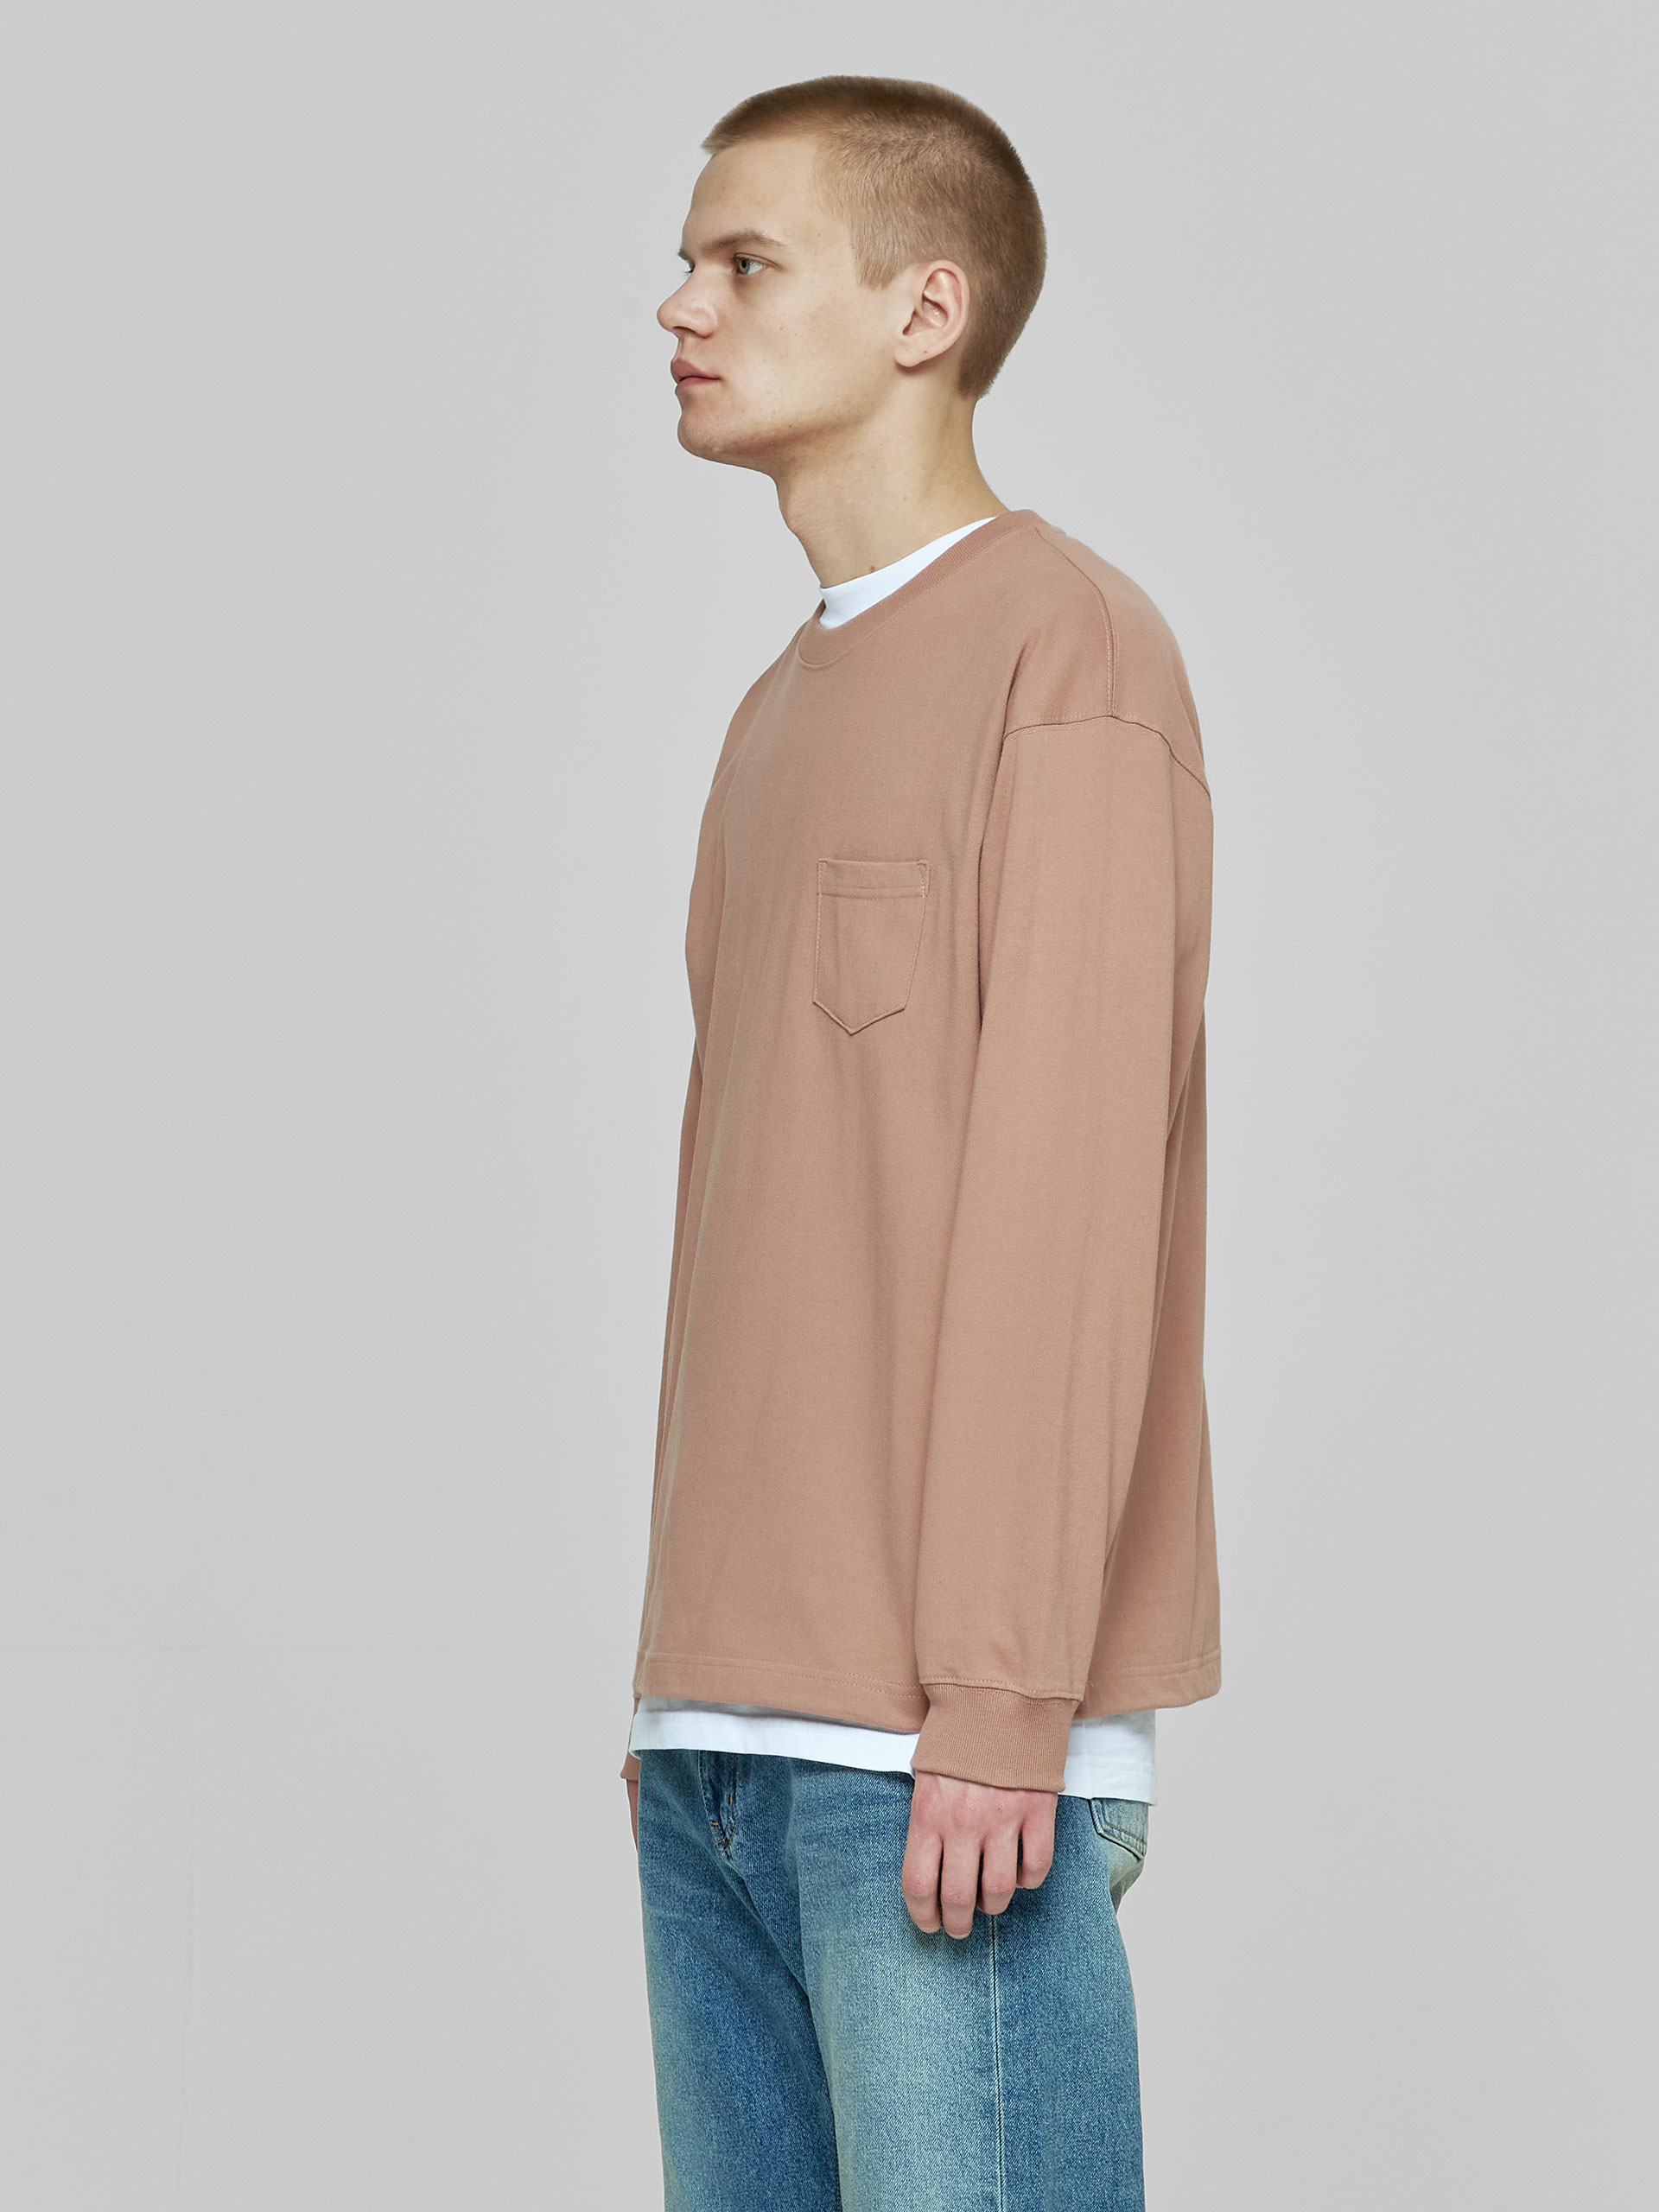 Лонгслив Heavyweghit Pocket L/S Tee